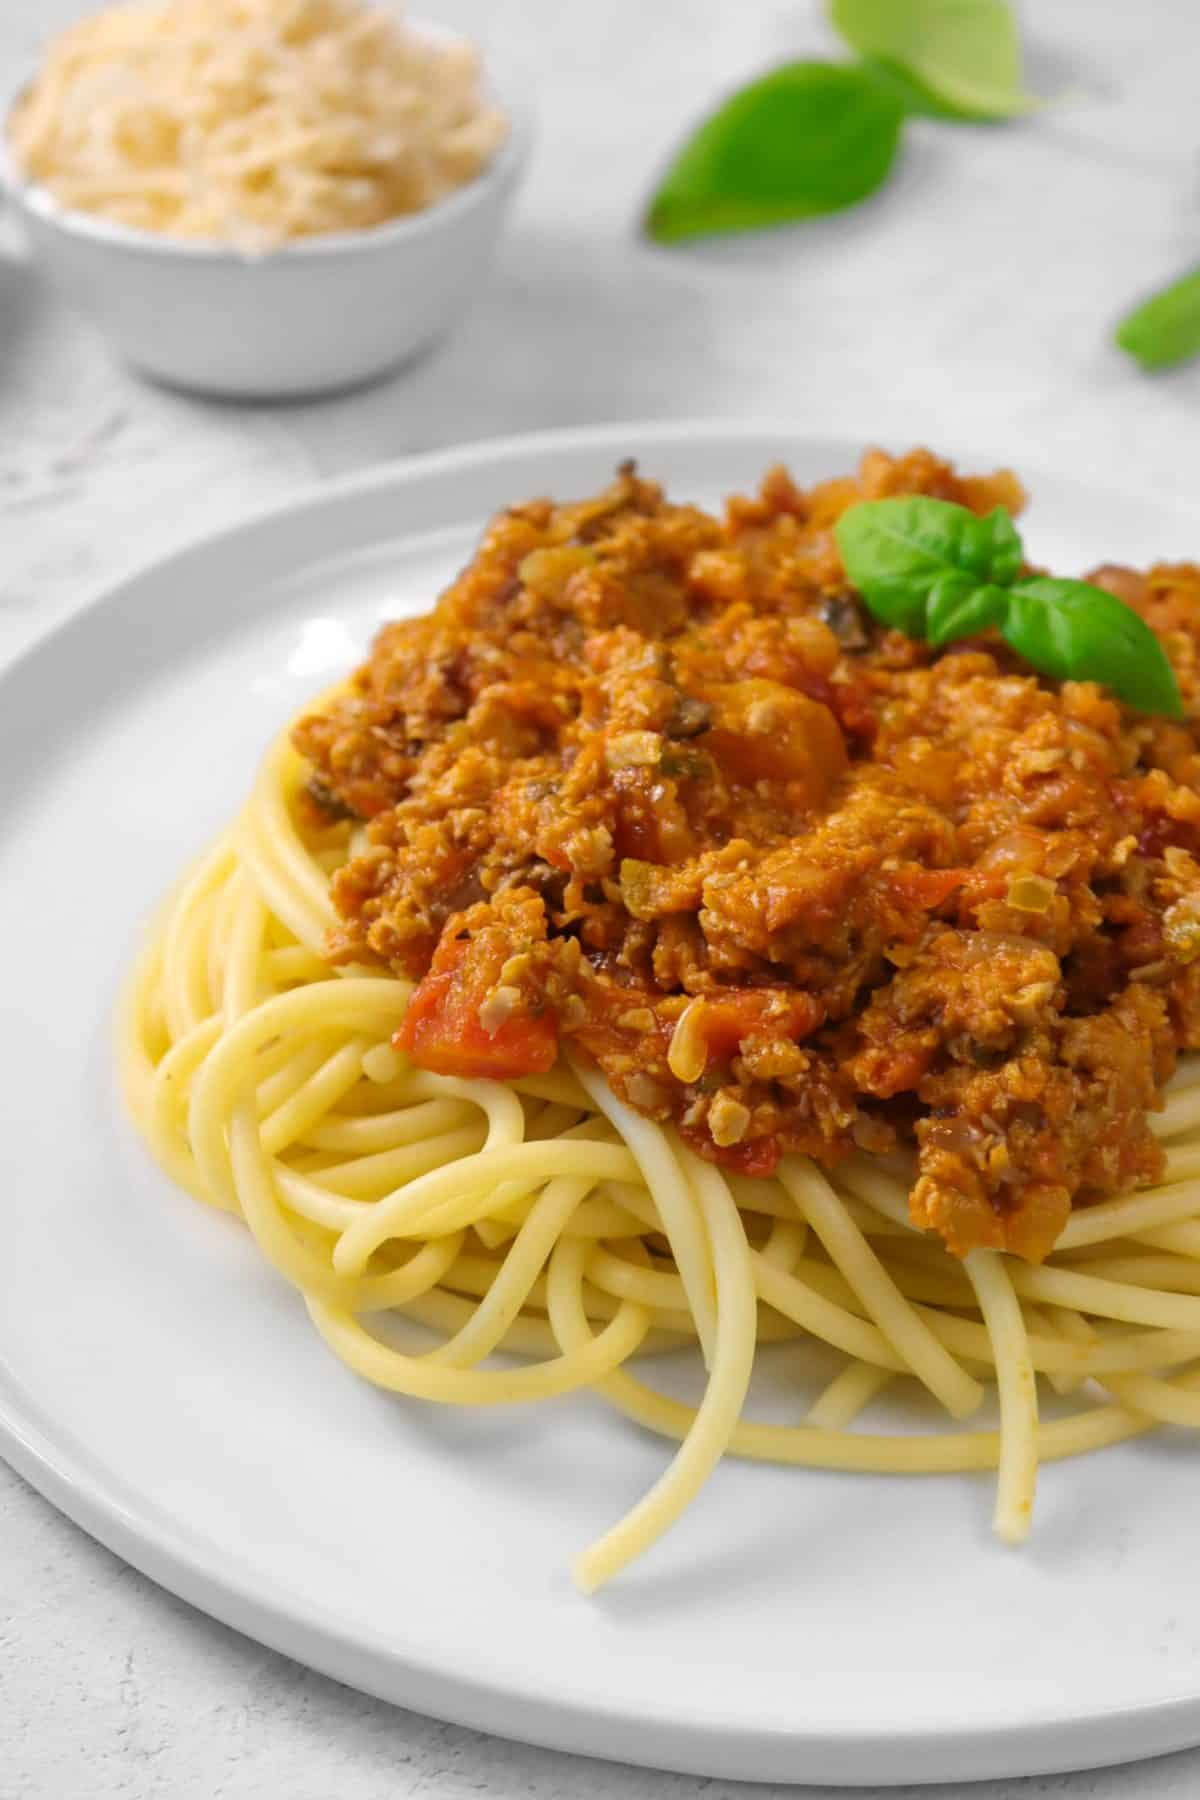 vegan spaghetti sauce on a white plate with pasta and basil and a bowl of vegan parmesan